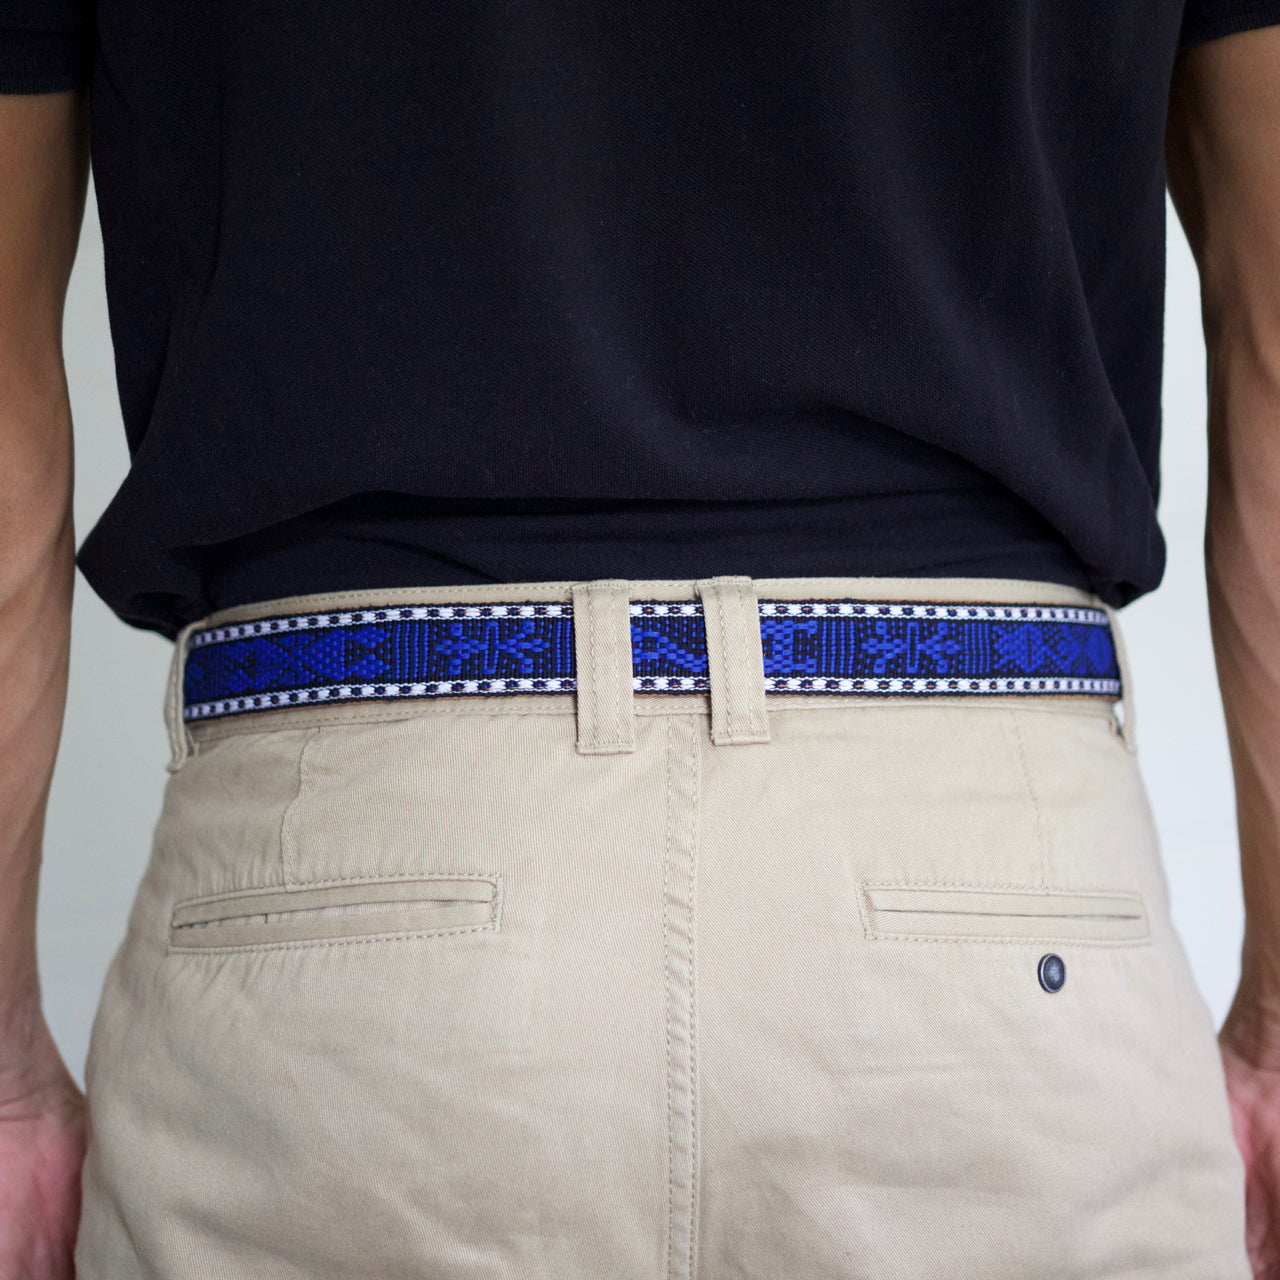 Santo Tomas Belt - Size 34 No. 11